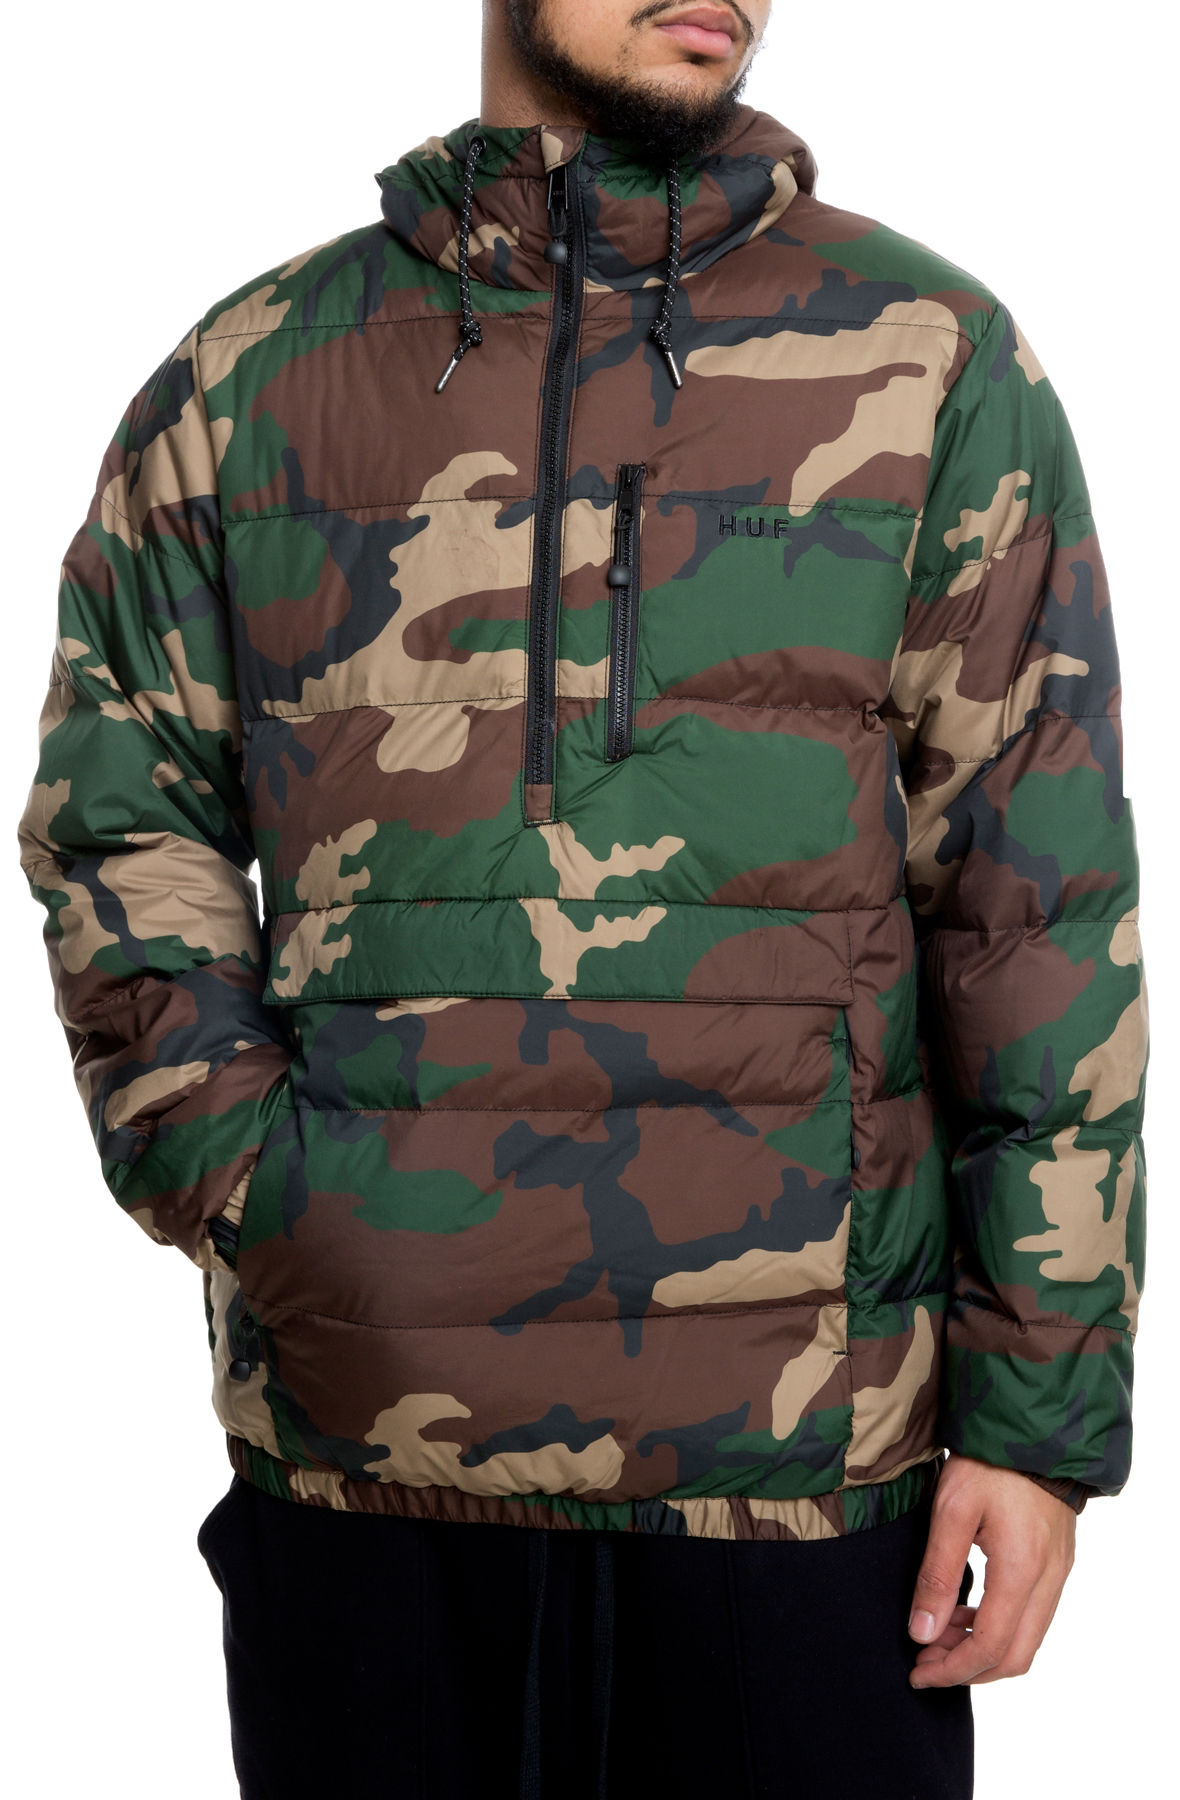 Image of The Everest Jacket in Woodland Camo